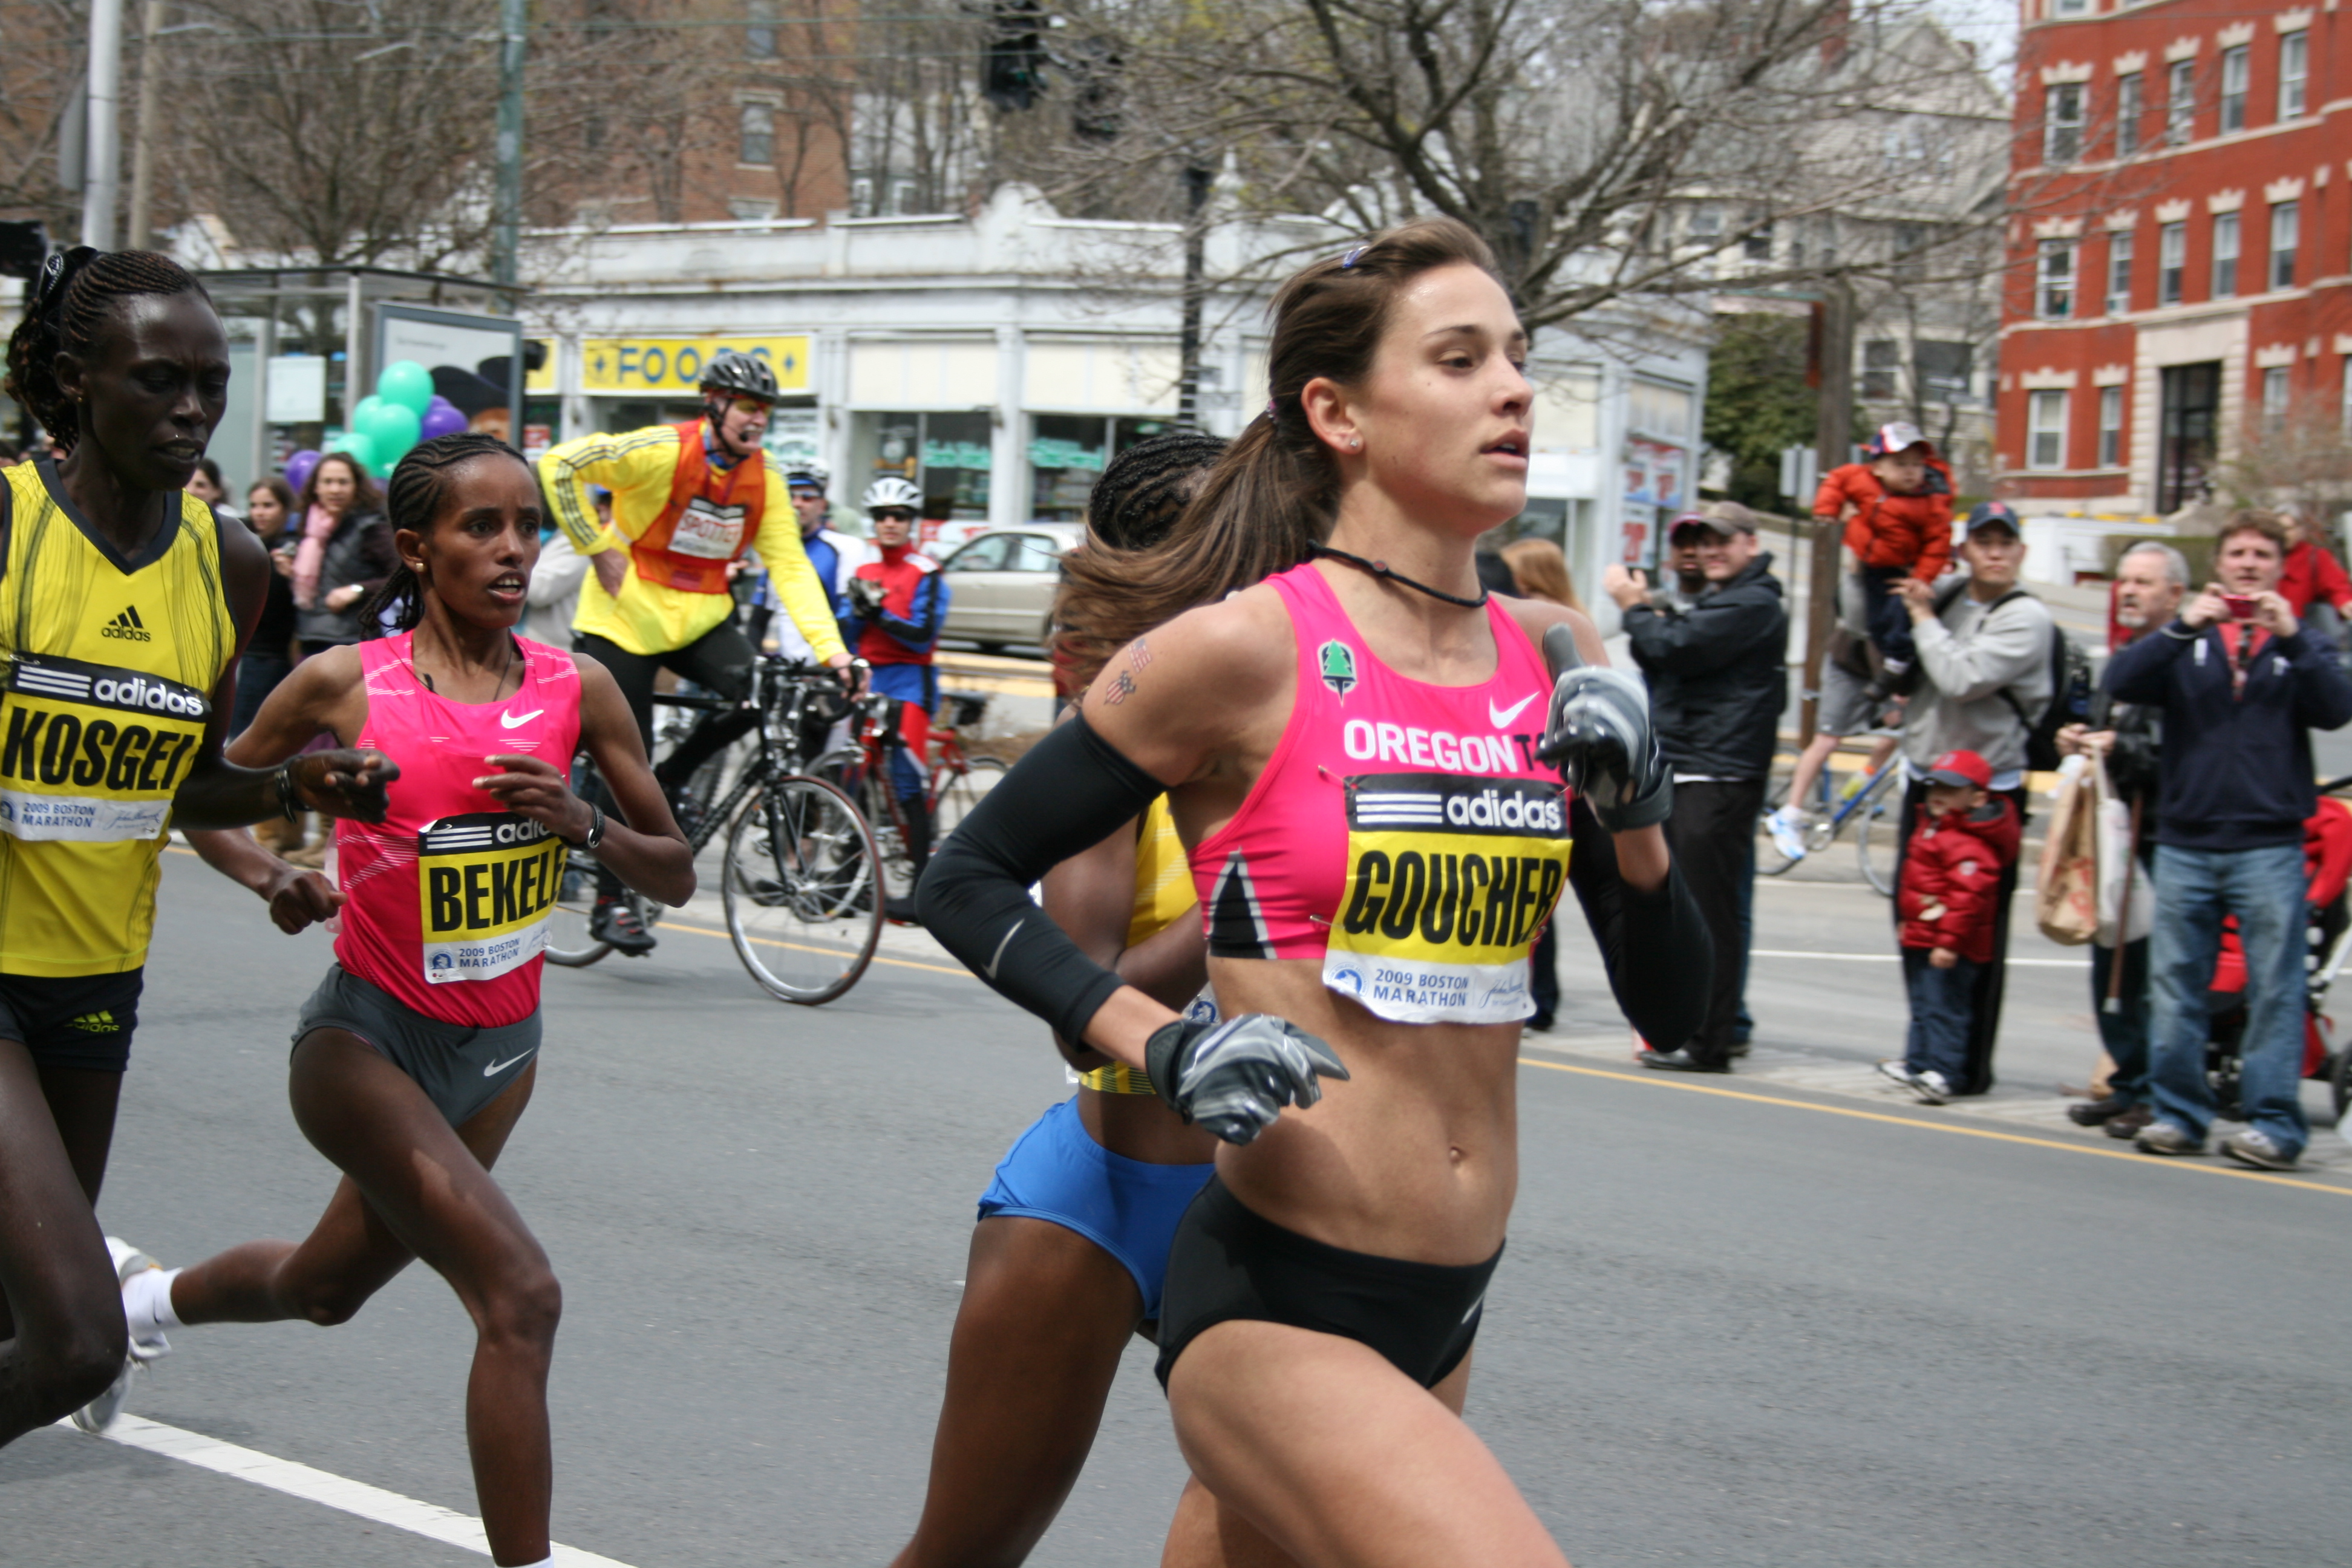 File:BOSTON MARATHON 2009 - Leading Women.jpg - Wikipedia, the free ...